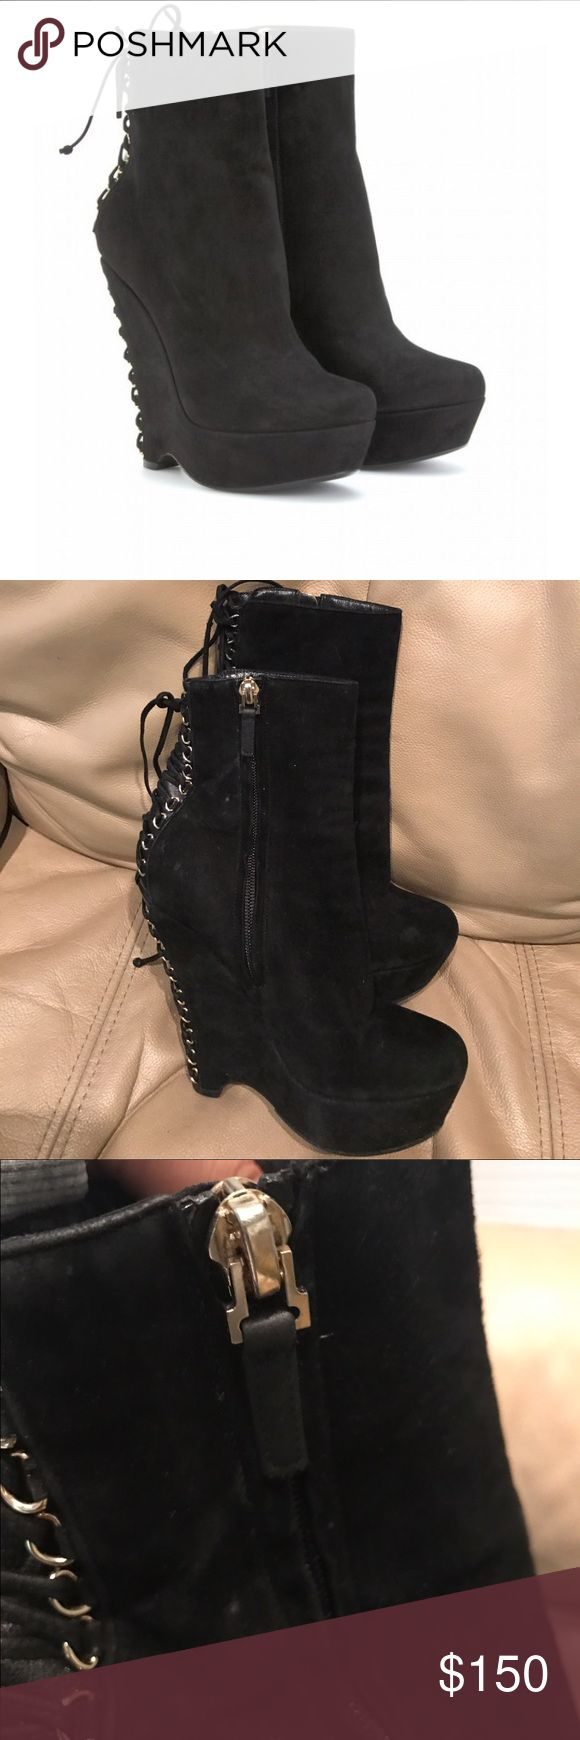 Yves Saint Laurent Madge 105 boots Good overall condition.  Boots have been resole. Need some light cleaning. Price is negotiable. Yves Saint Laurent Shoes Ankle Boots & Booties